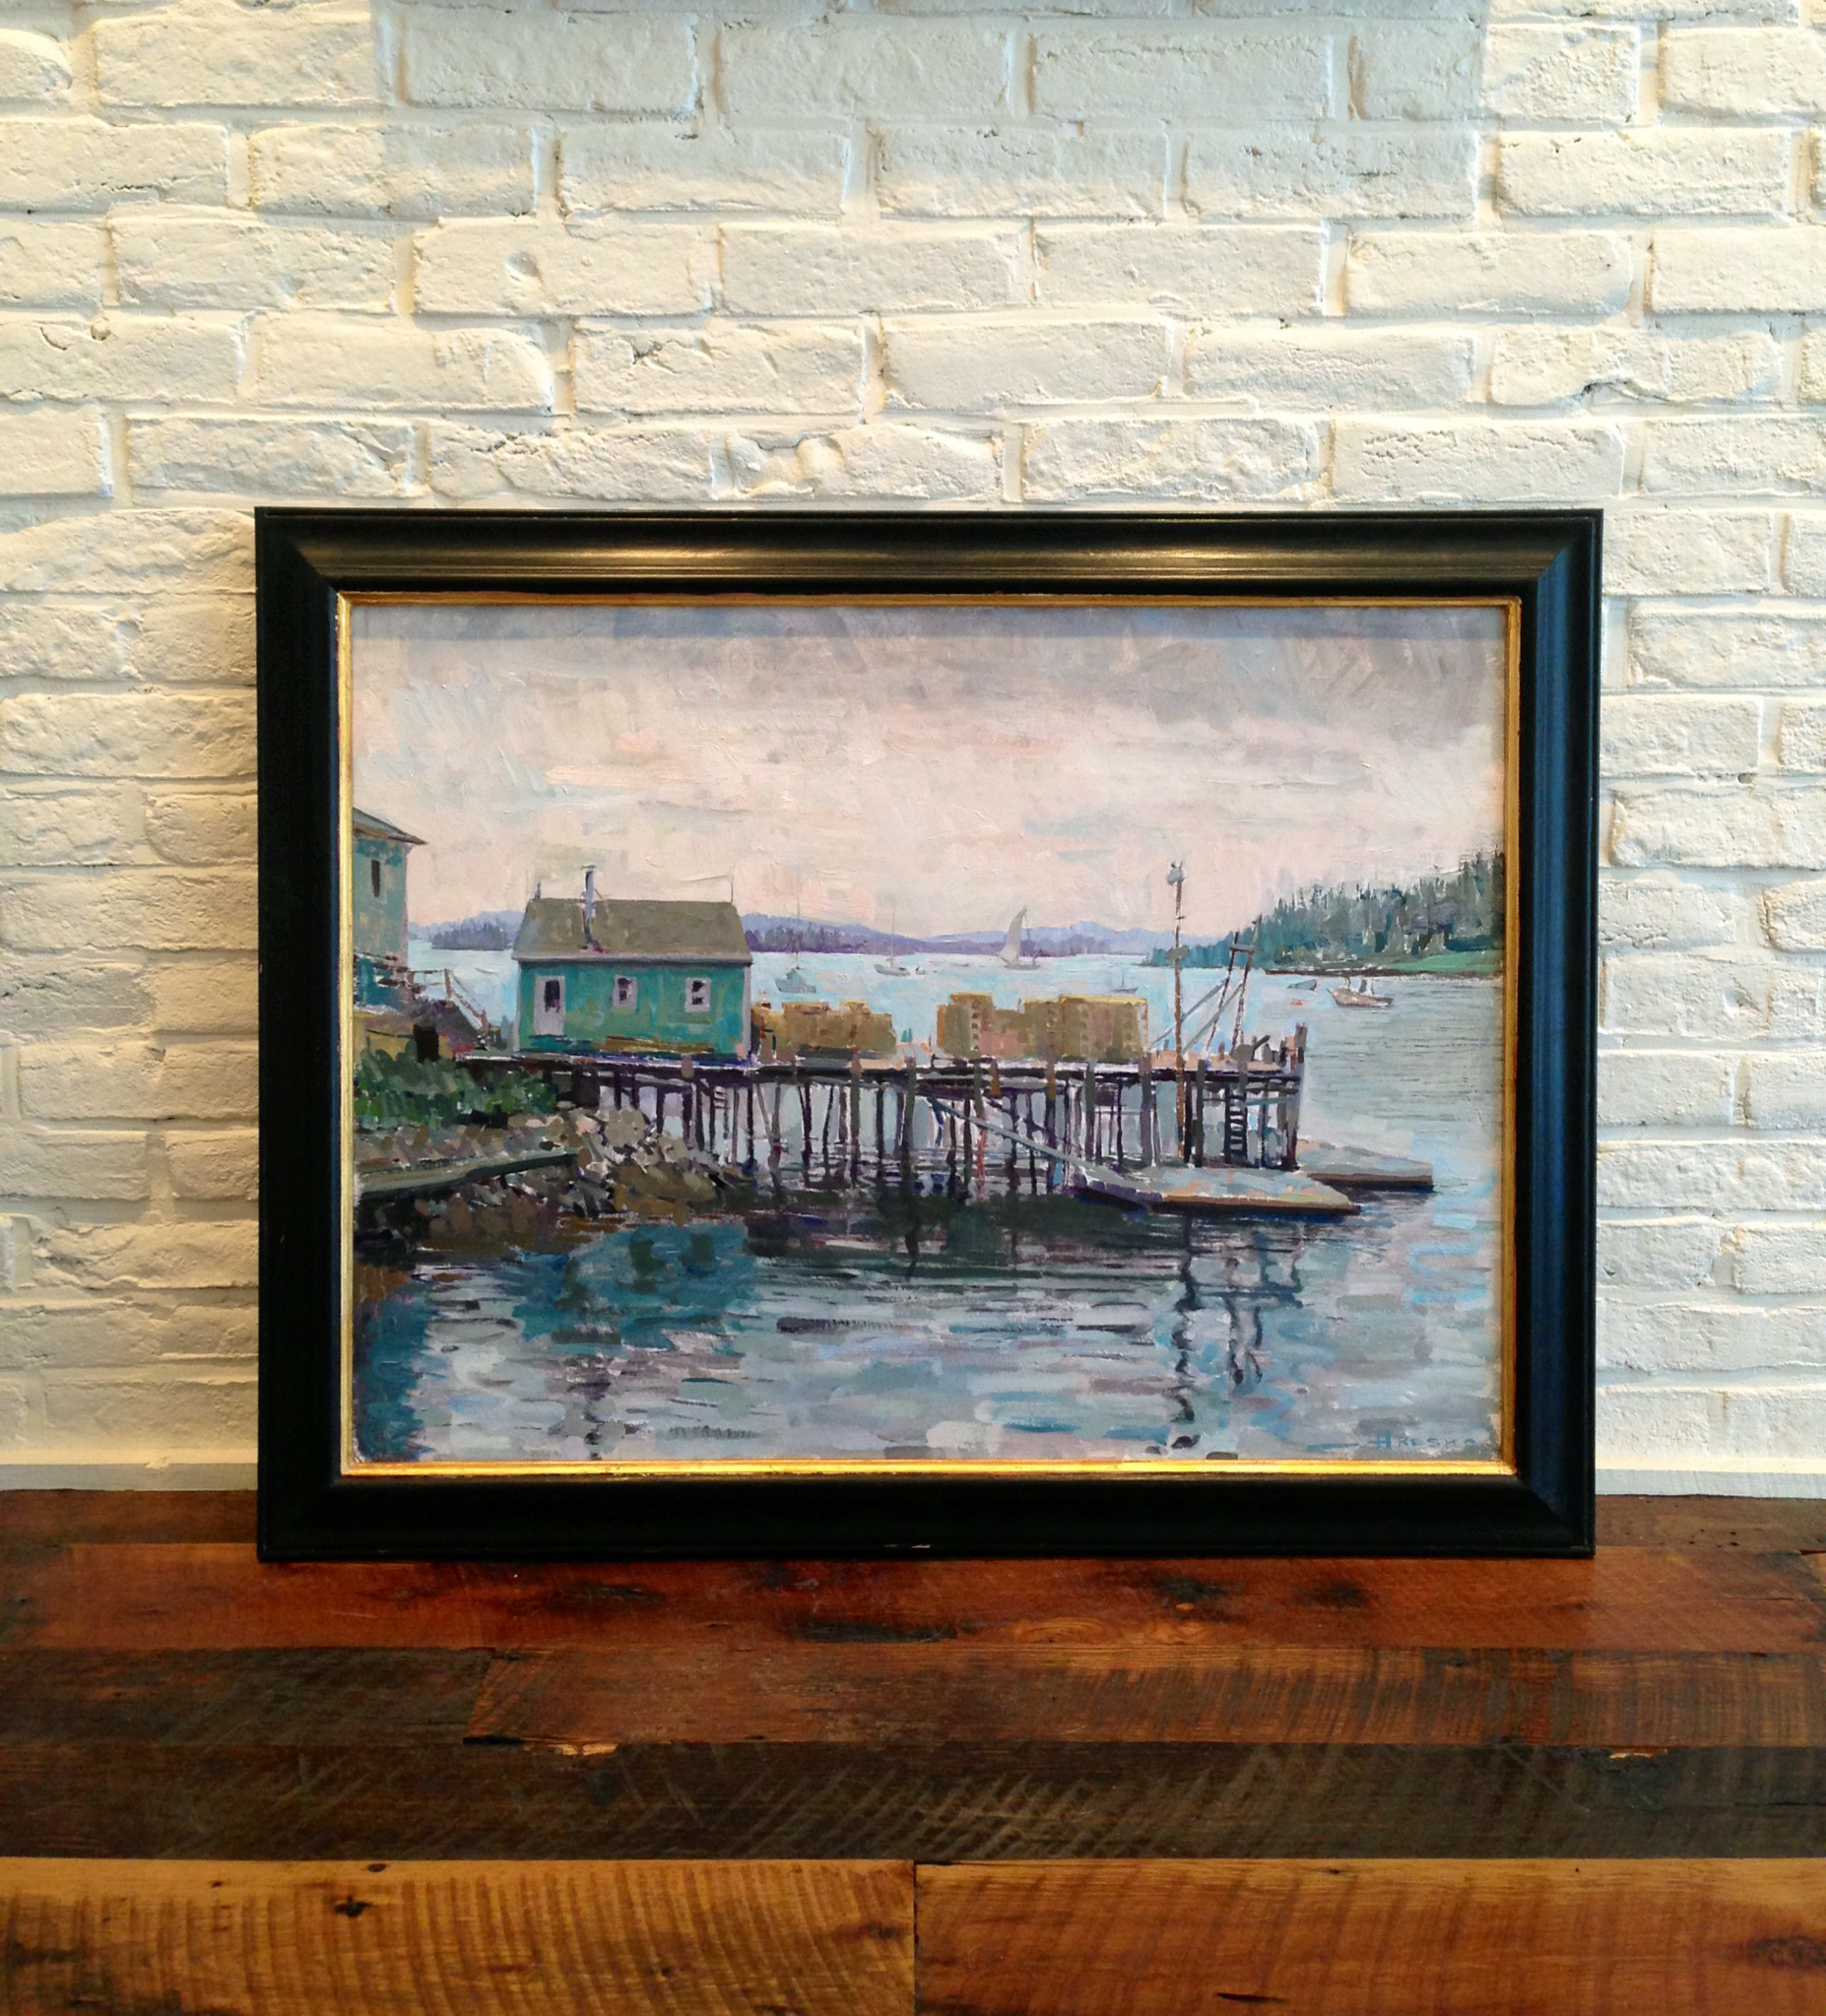 'Lobster Dock, Stonington' Framed